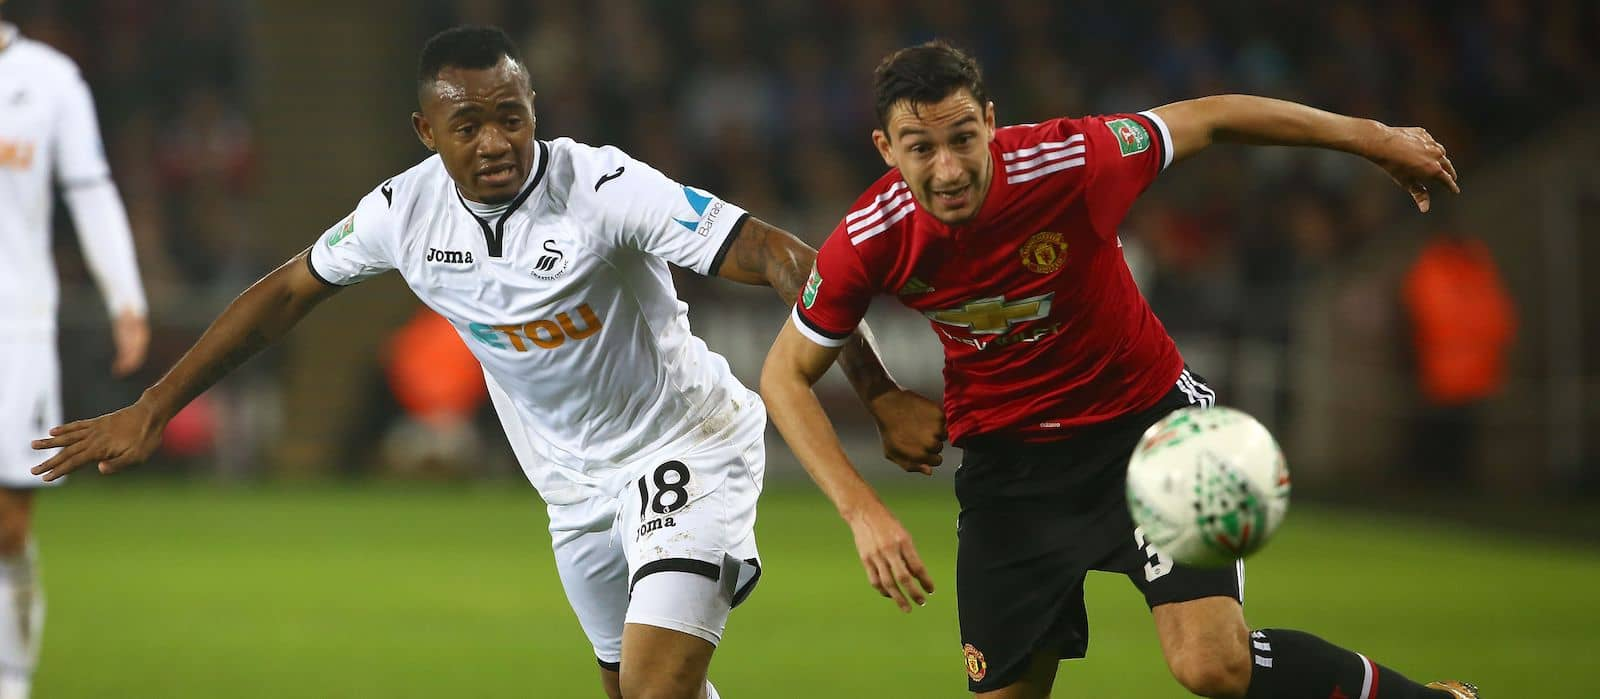 Serie A giants take aim at Manchester United's Matteo Darmian: report